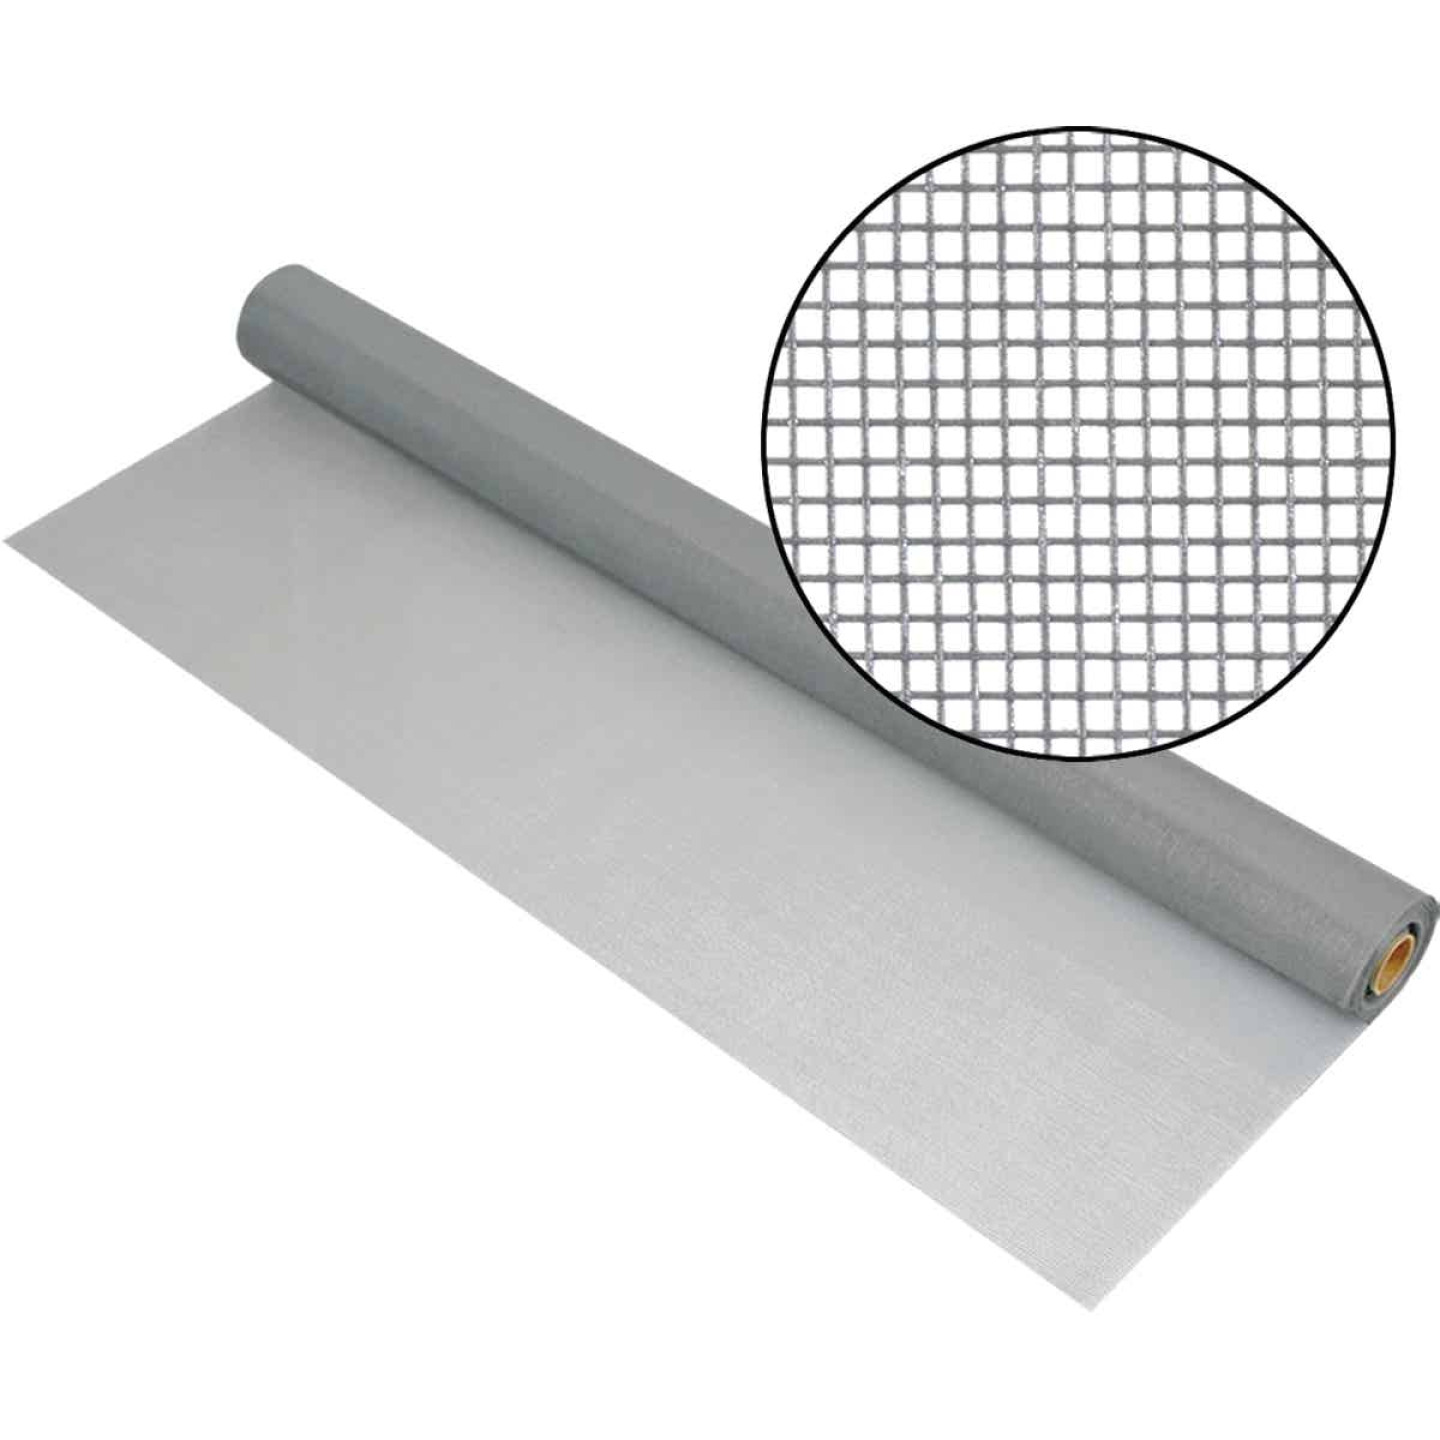 Phifer 32 In. x 100 Ft. Gray Fiberglass Mesh Screen Cloth Image 1